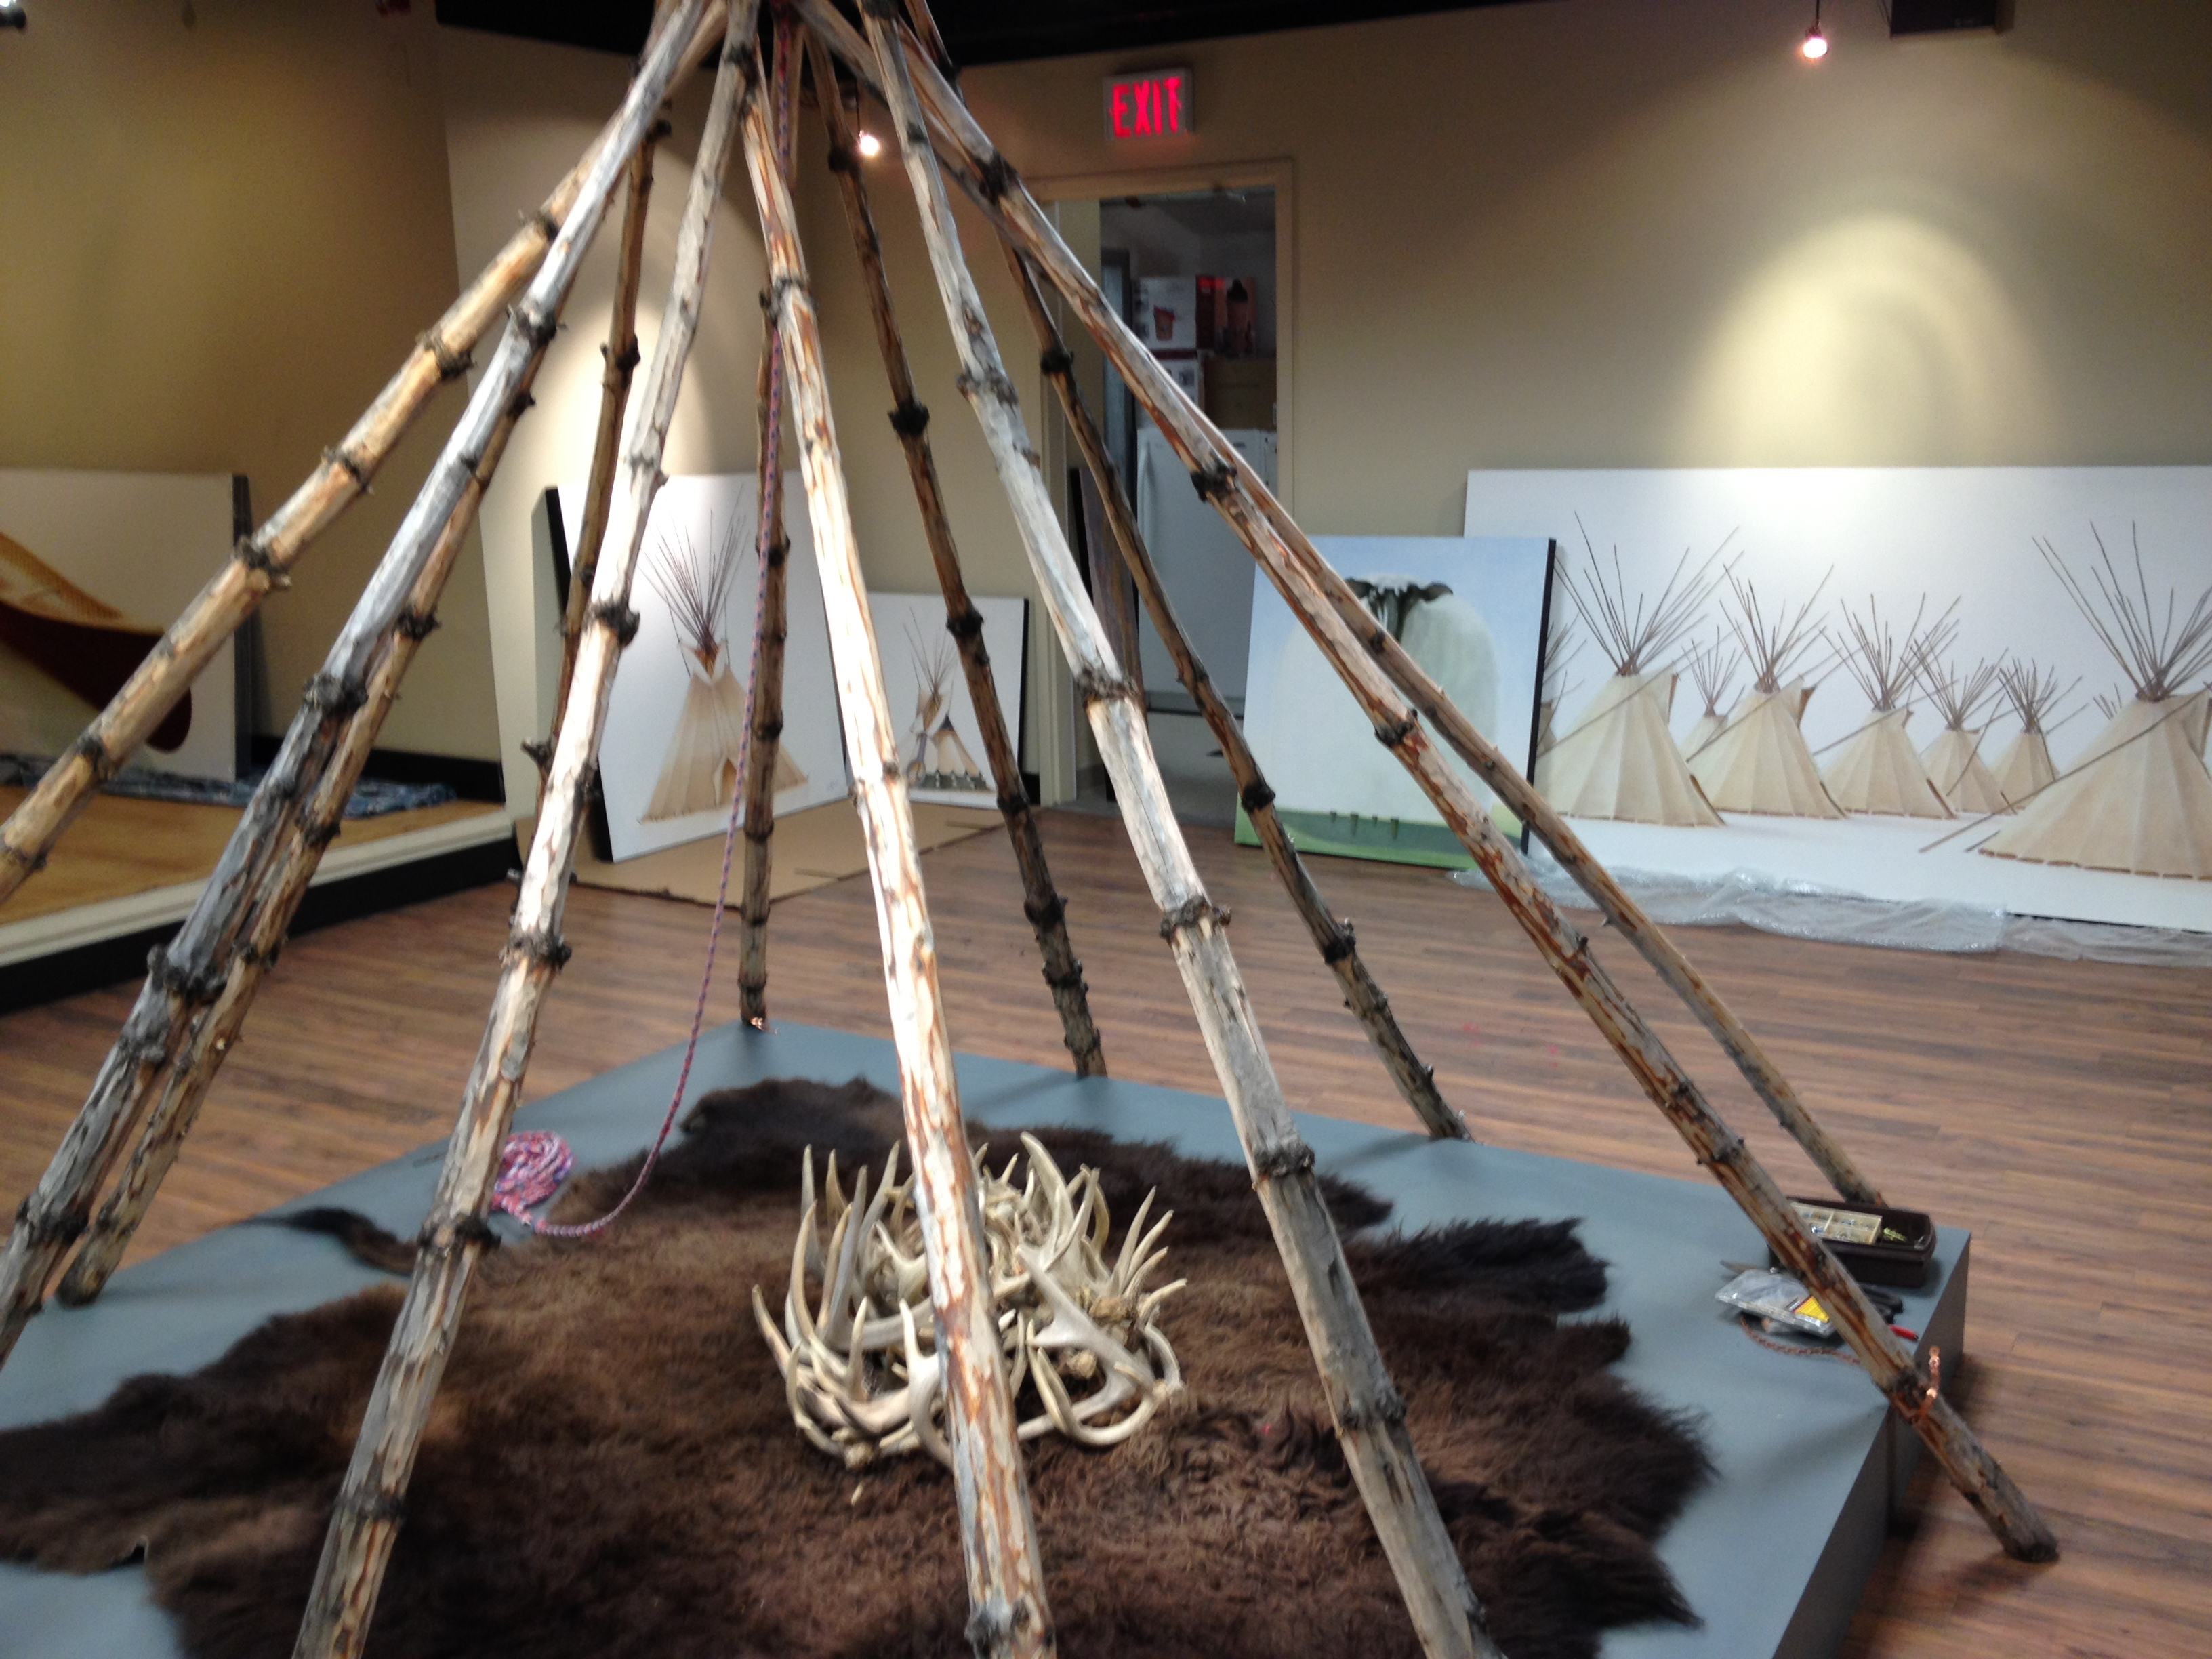 Setting up the CAMP exhibition by Janice Tanton at the Okotoks Art Gallery